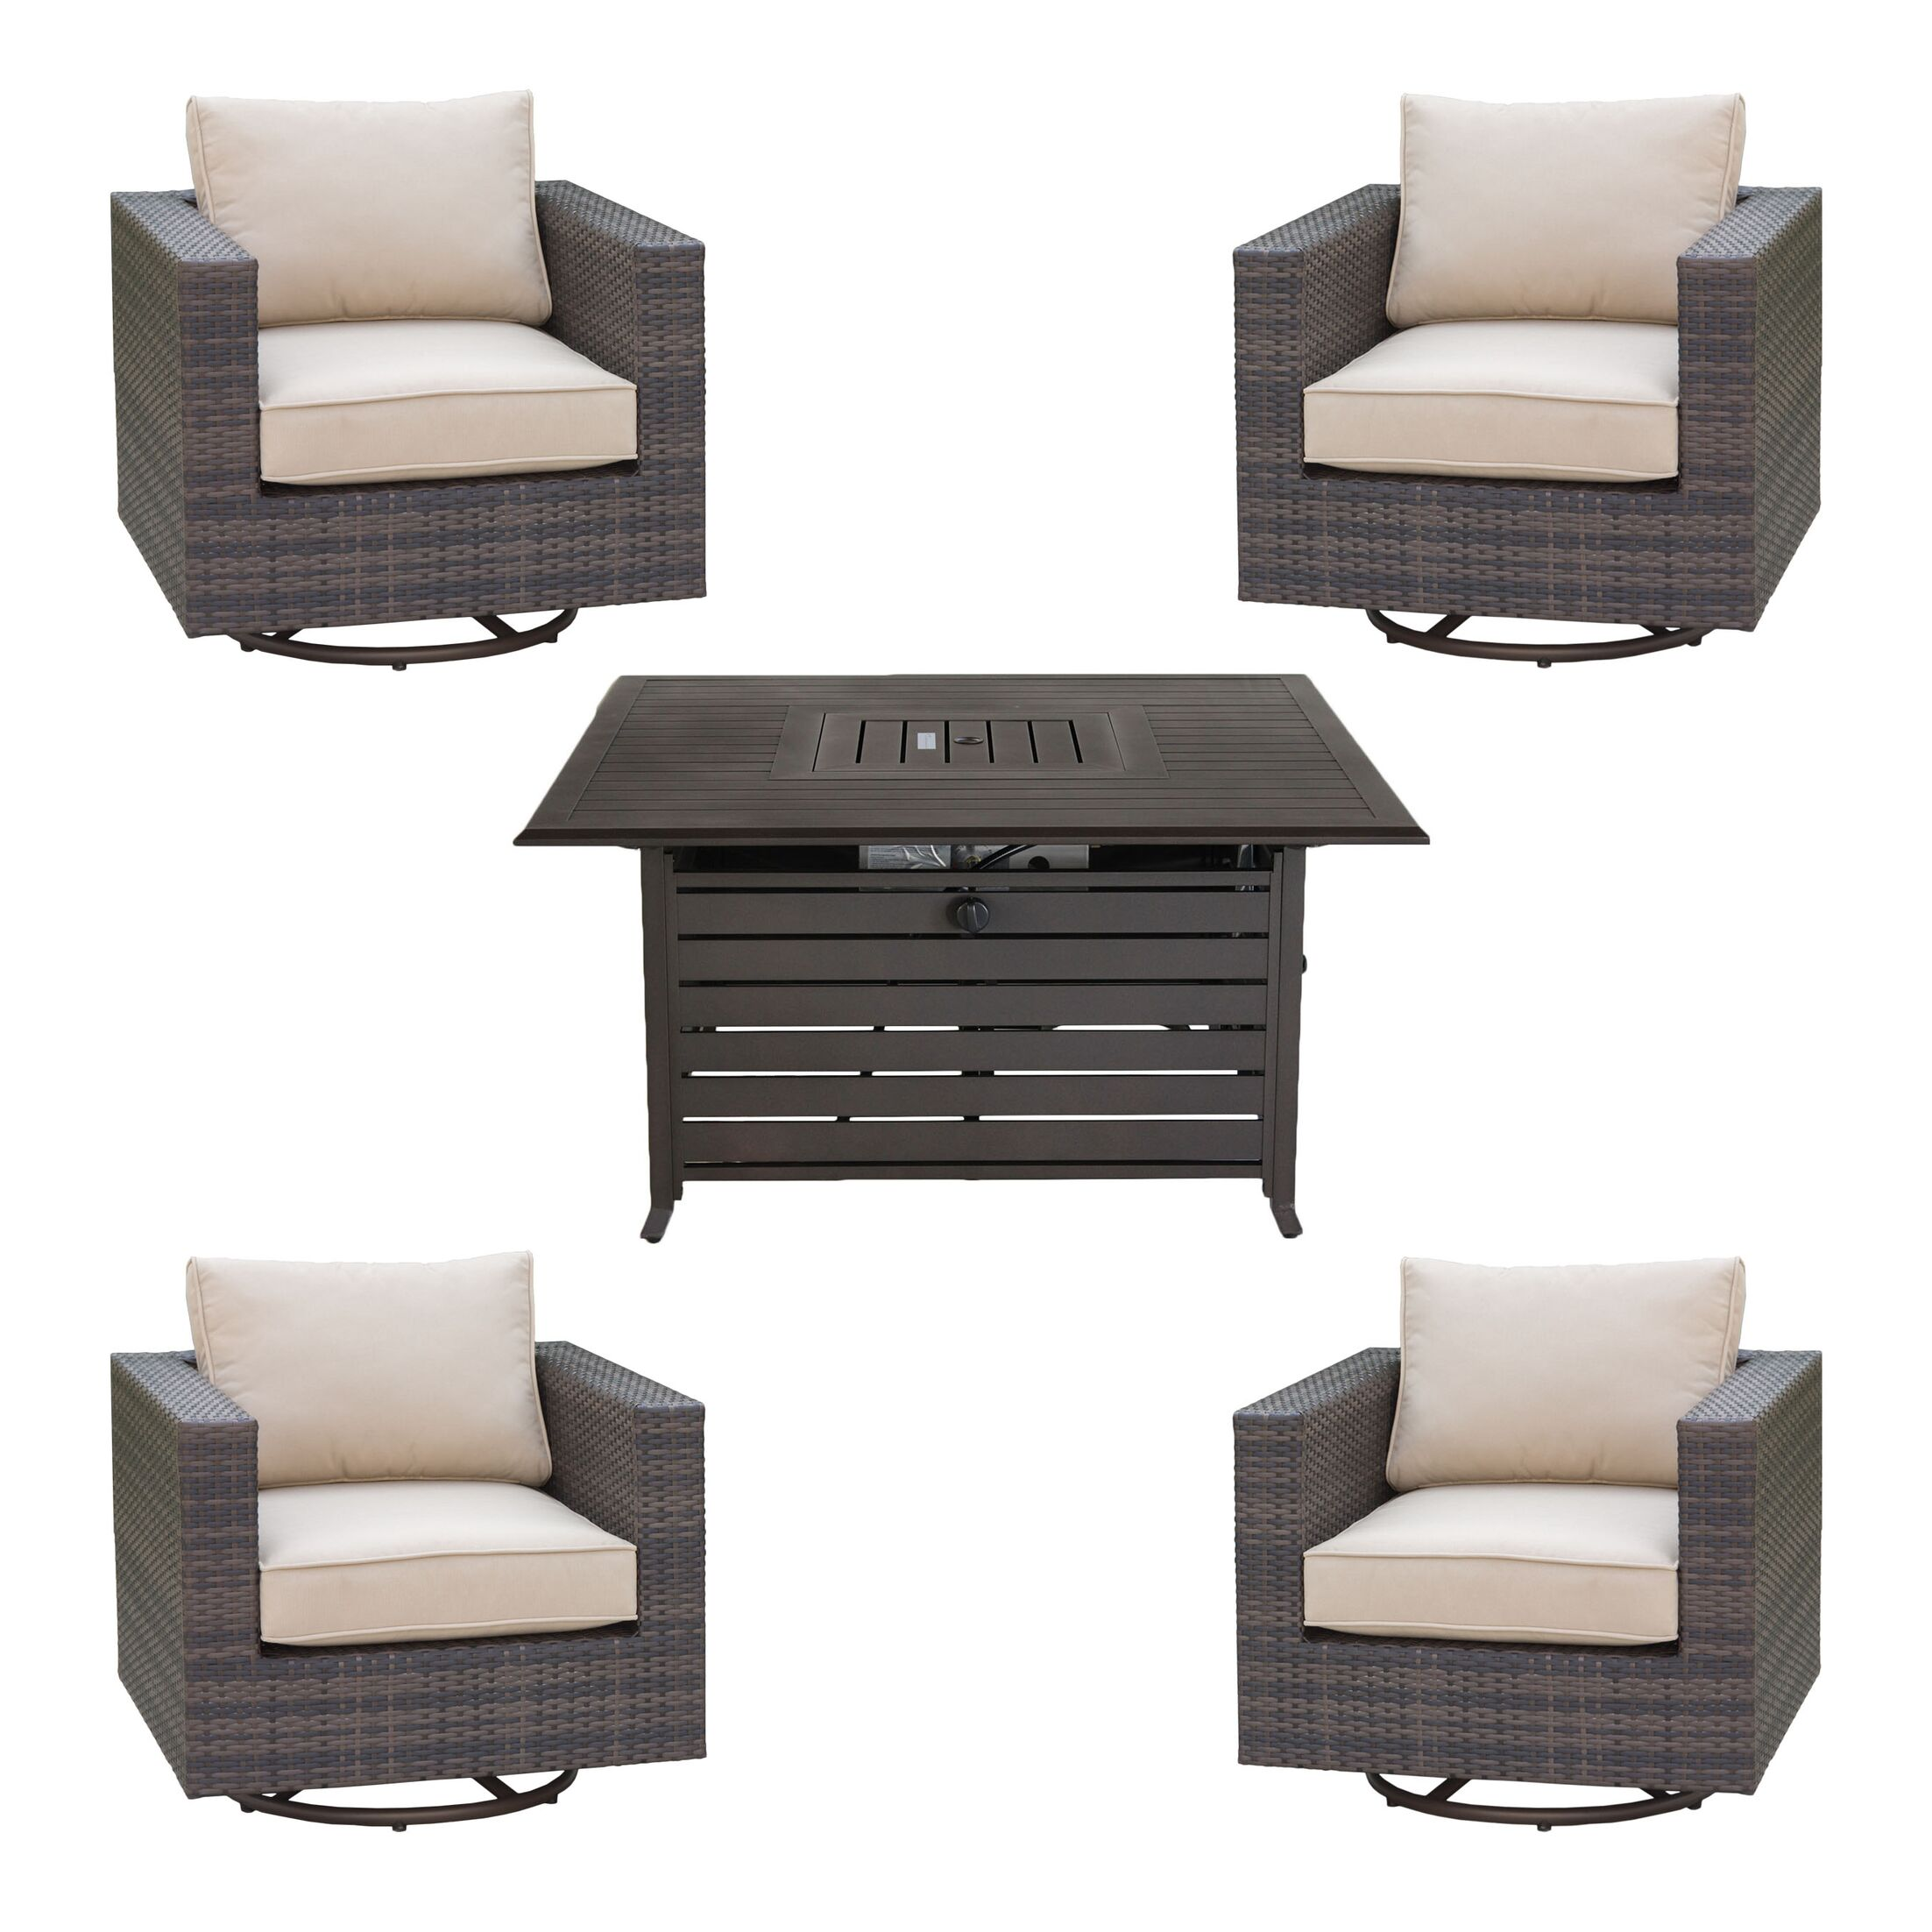 Lara 5 Piece Sectional Set with Cushions Fire Pit Color: Mahogany